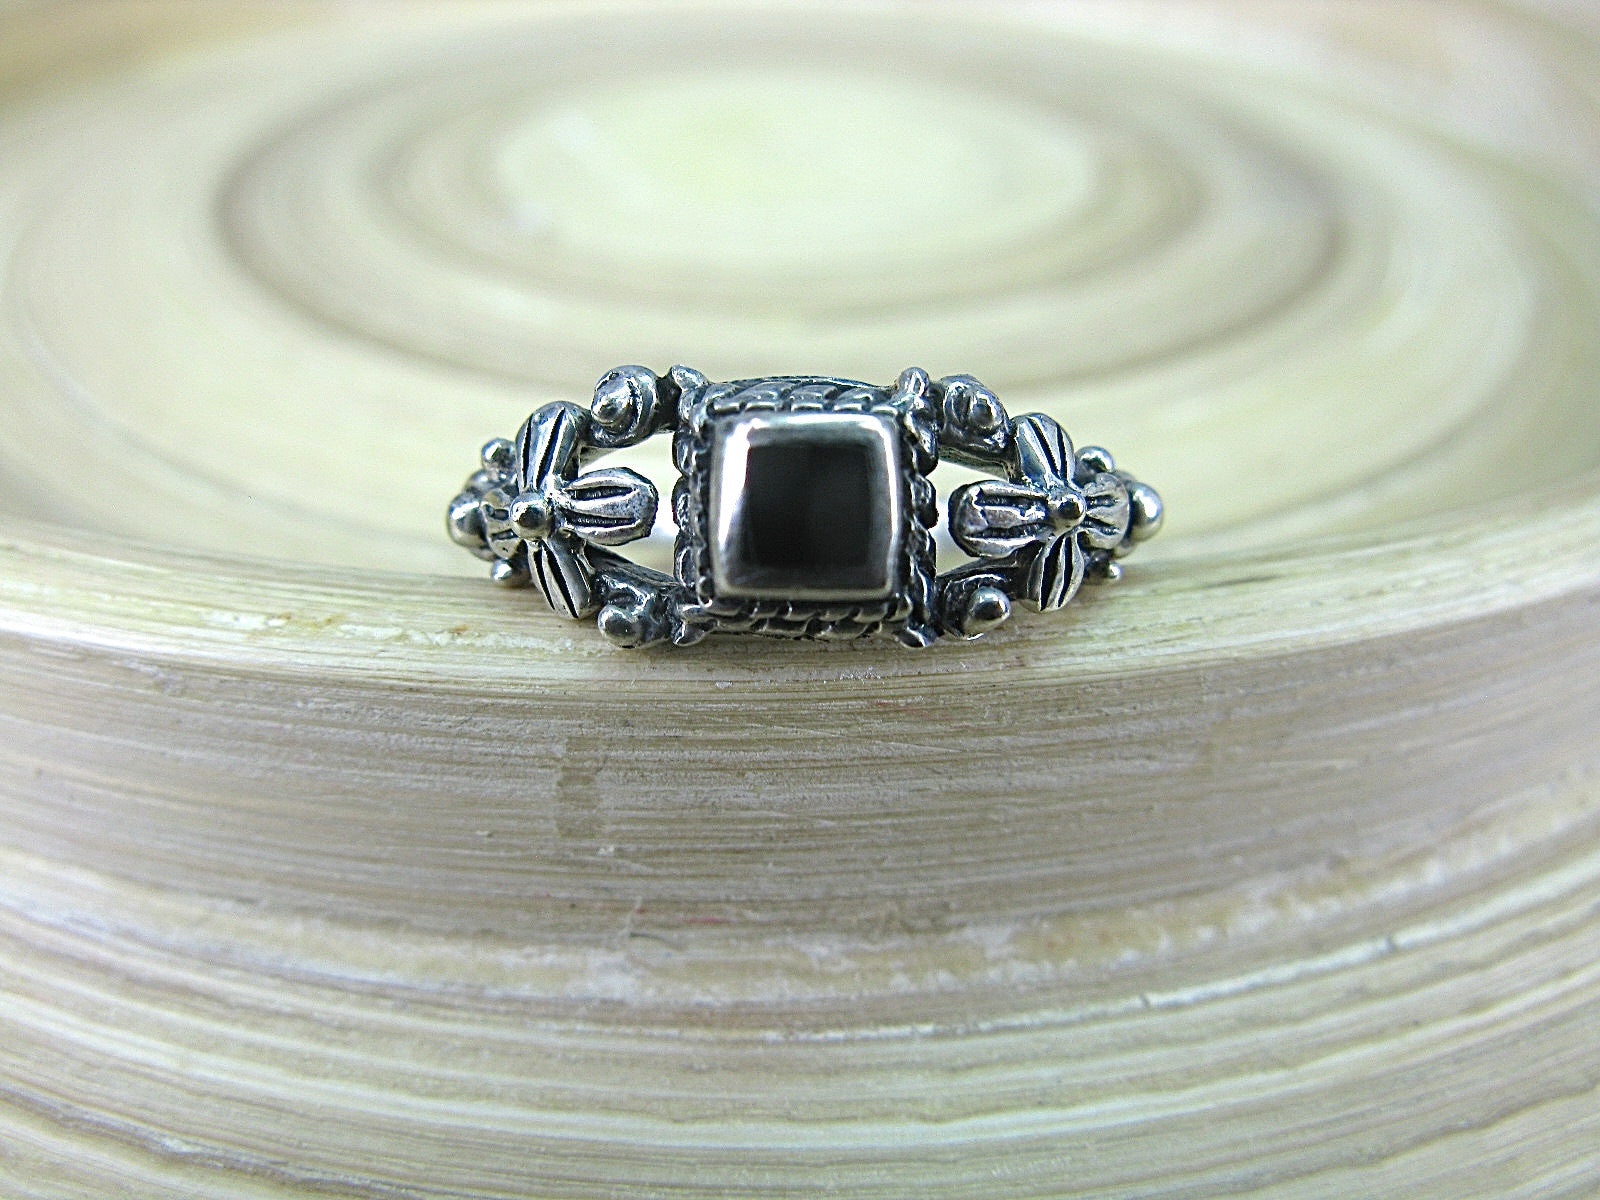 Onyx Square Oxidized 925 Sterling Silver Ring Ring Faith Owl - Faith Owl